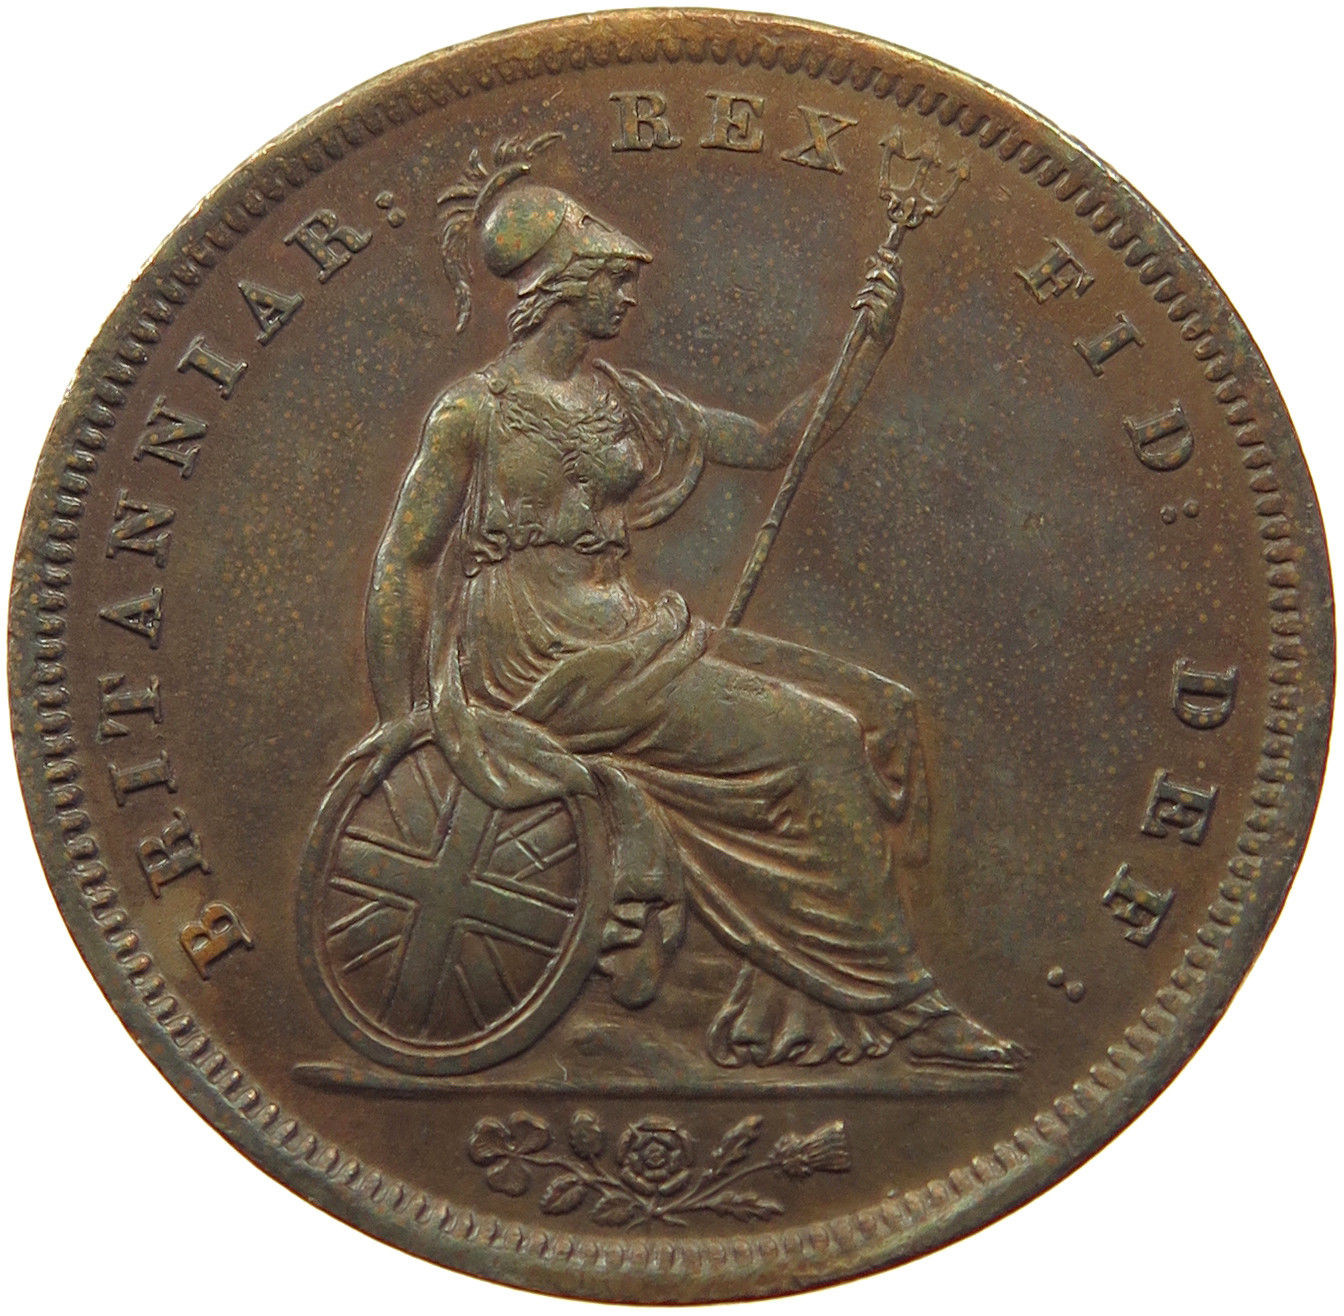 Penny 1826: Photo Great Britain Penny 1826